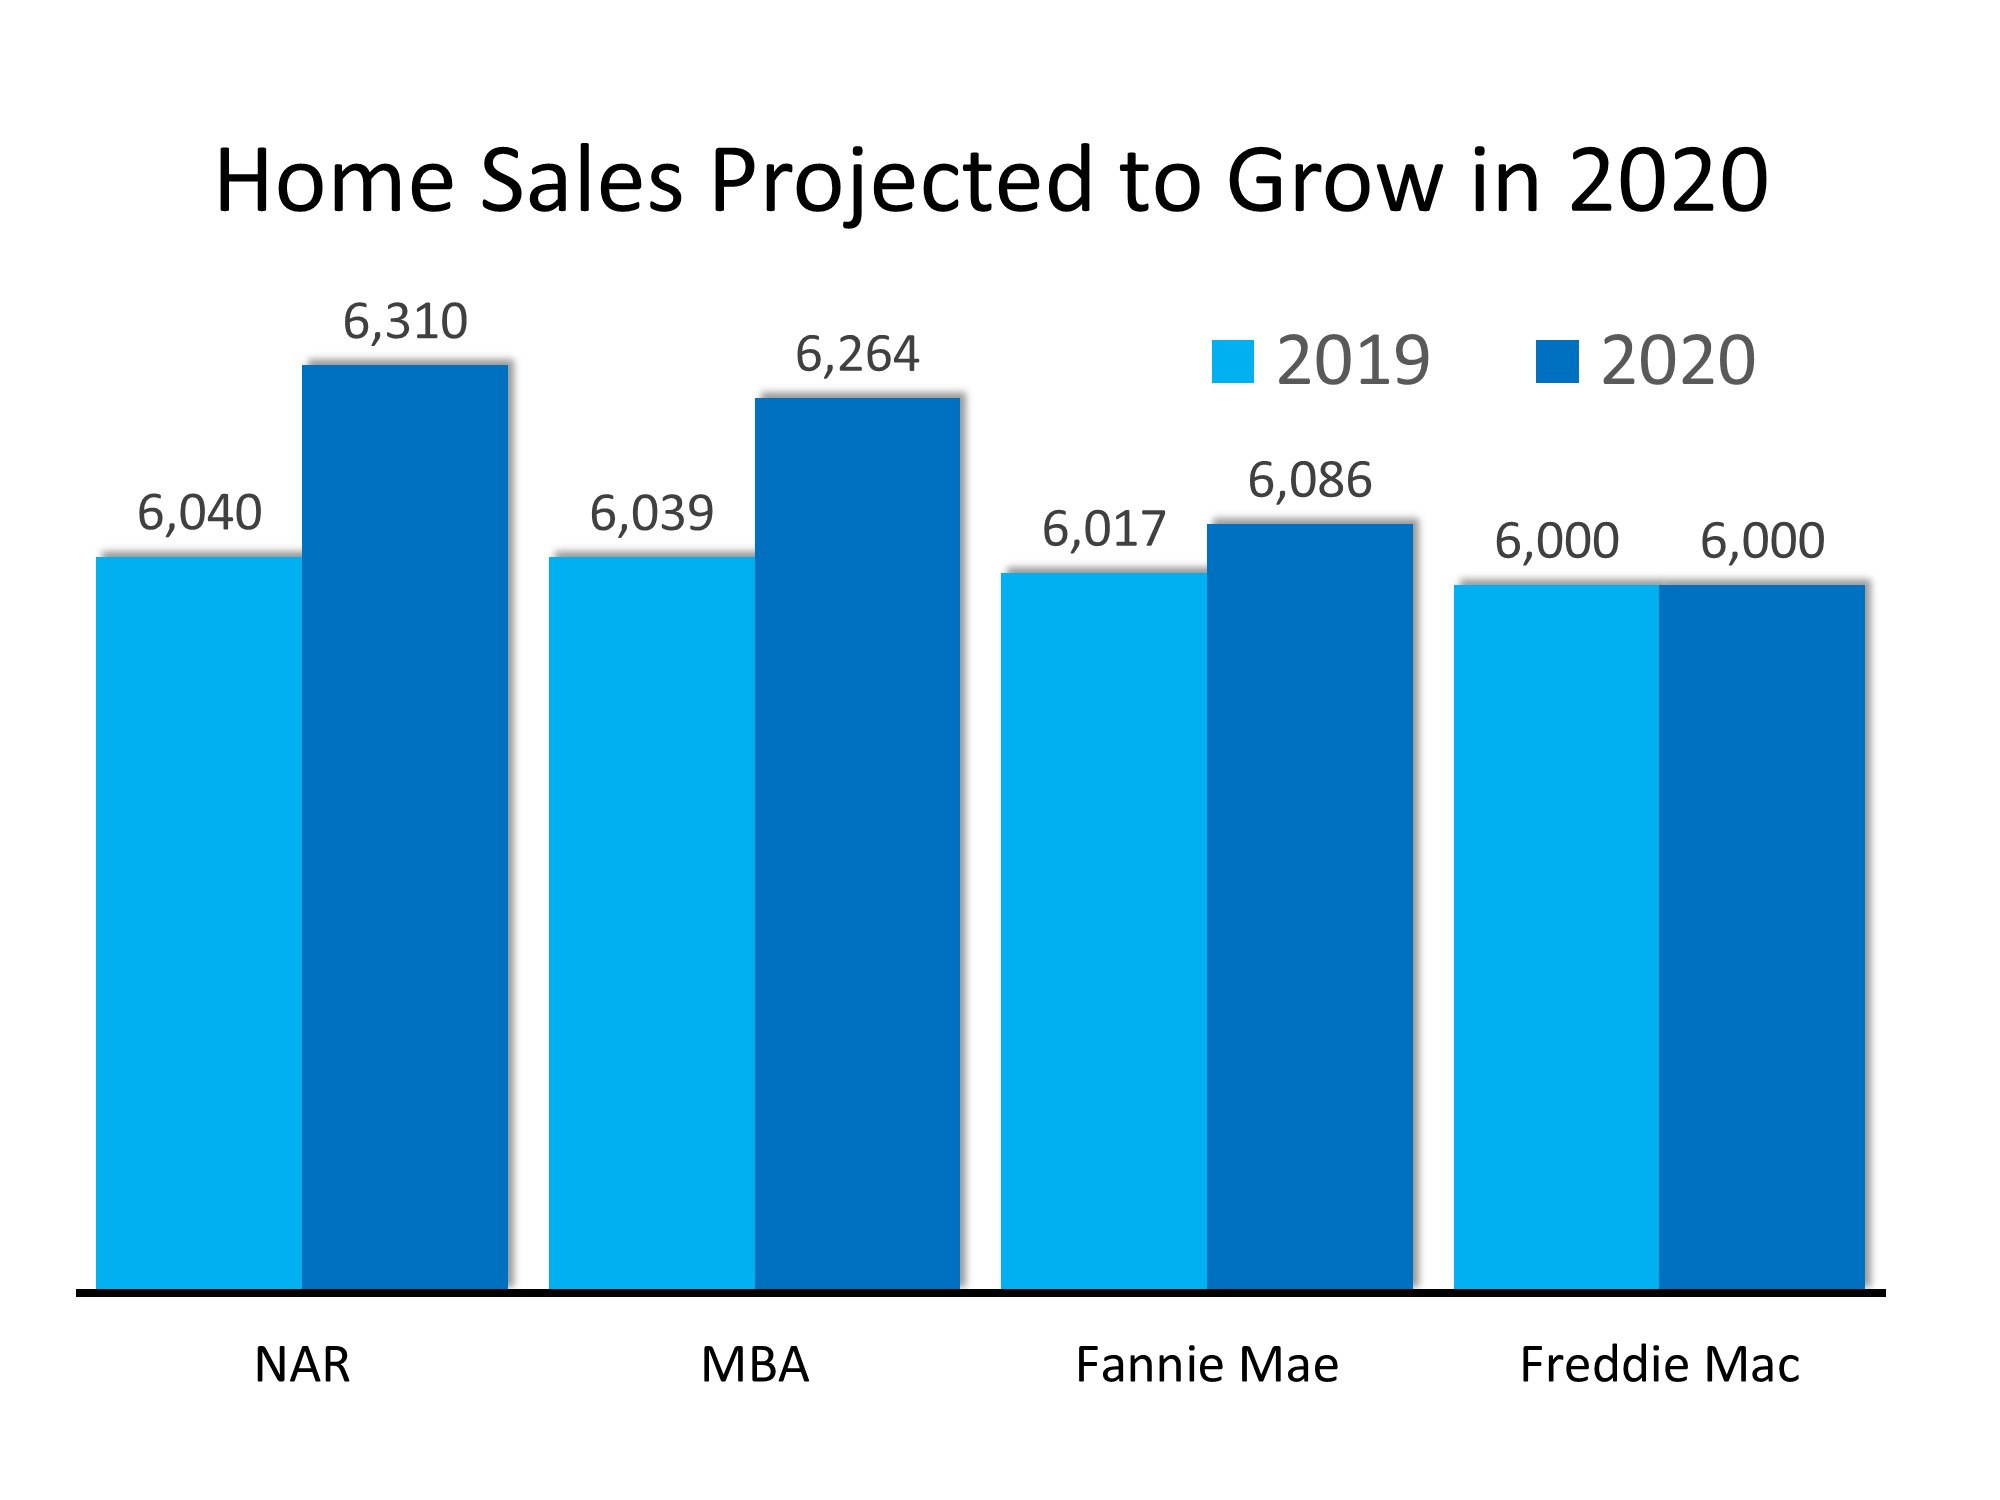 Home Sales Projections 2020